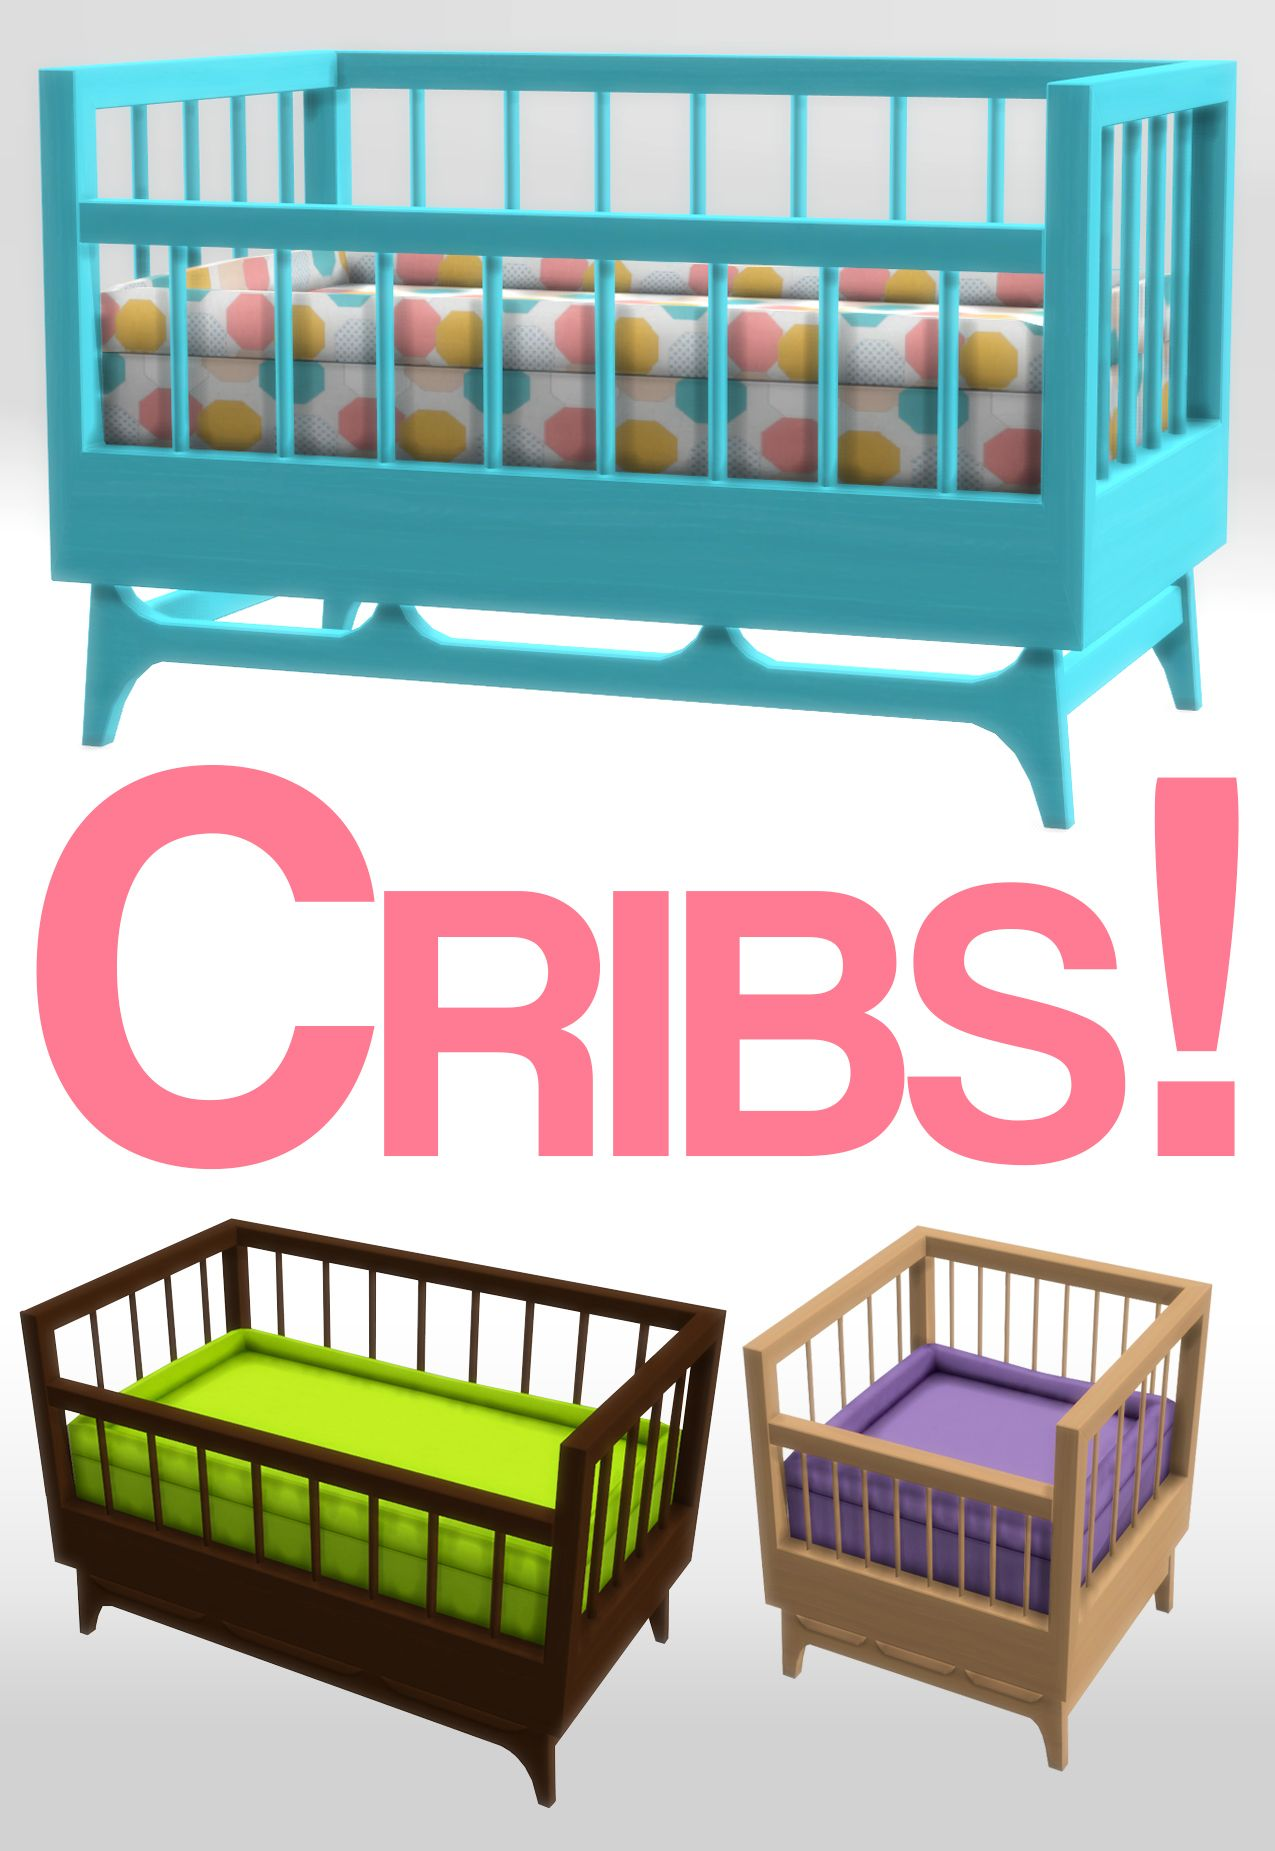 Cribs cribs cribs part two is here info and mattress for Baby and kids first furniture